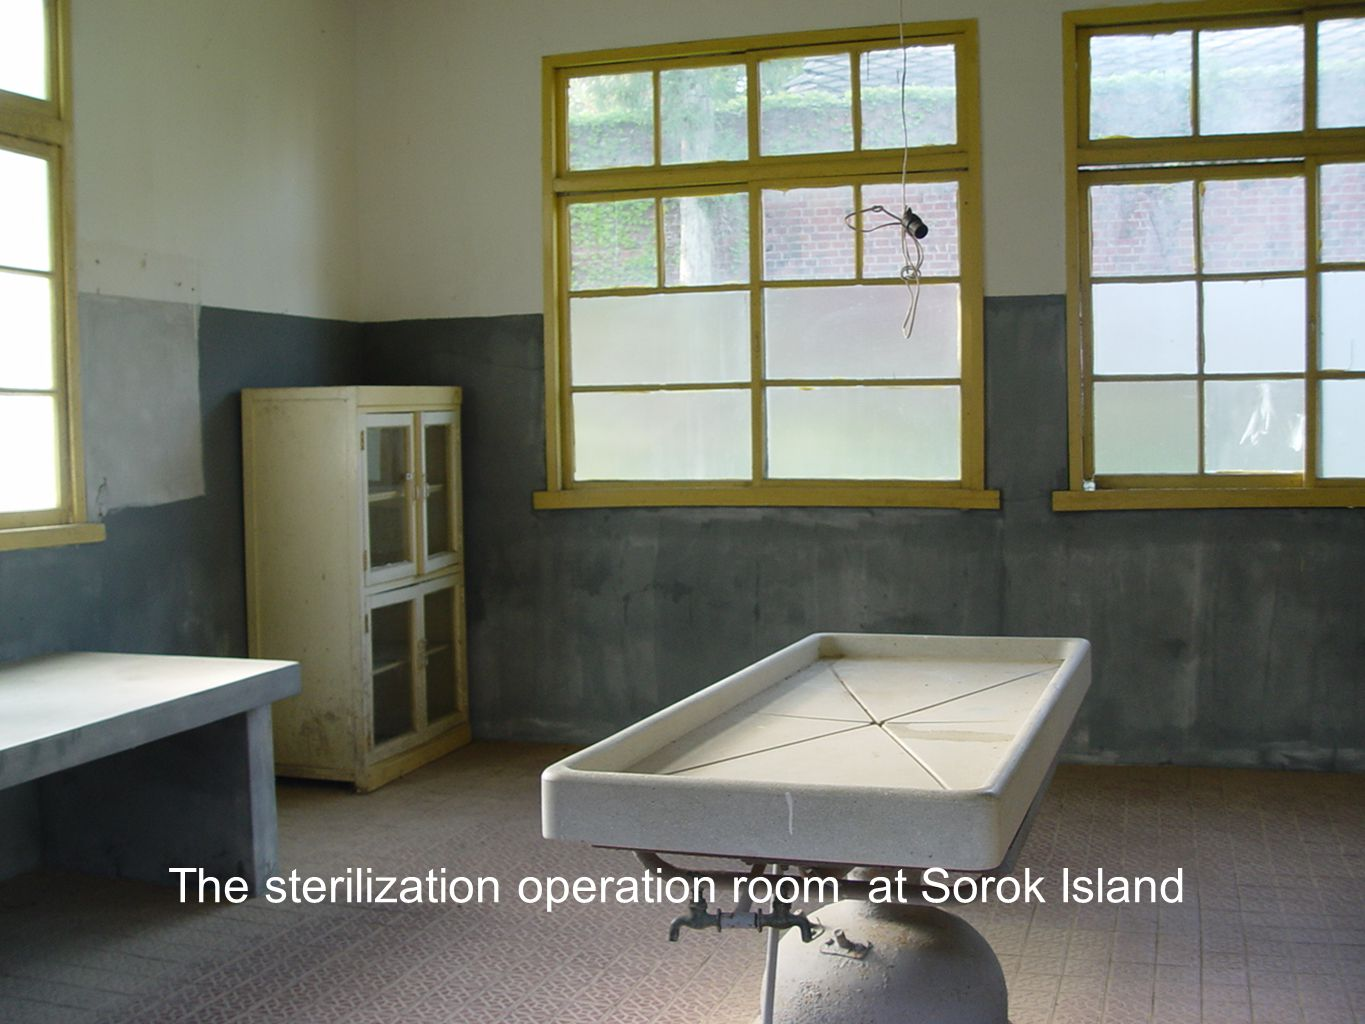 The sterilization operation room at Sorok Island